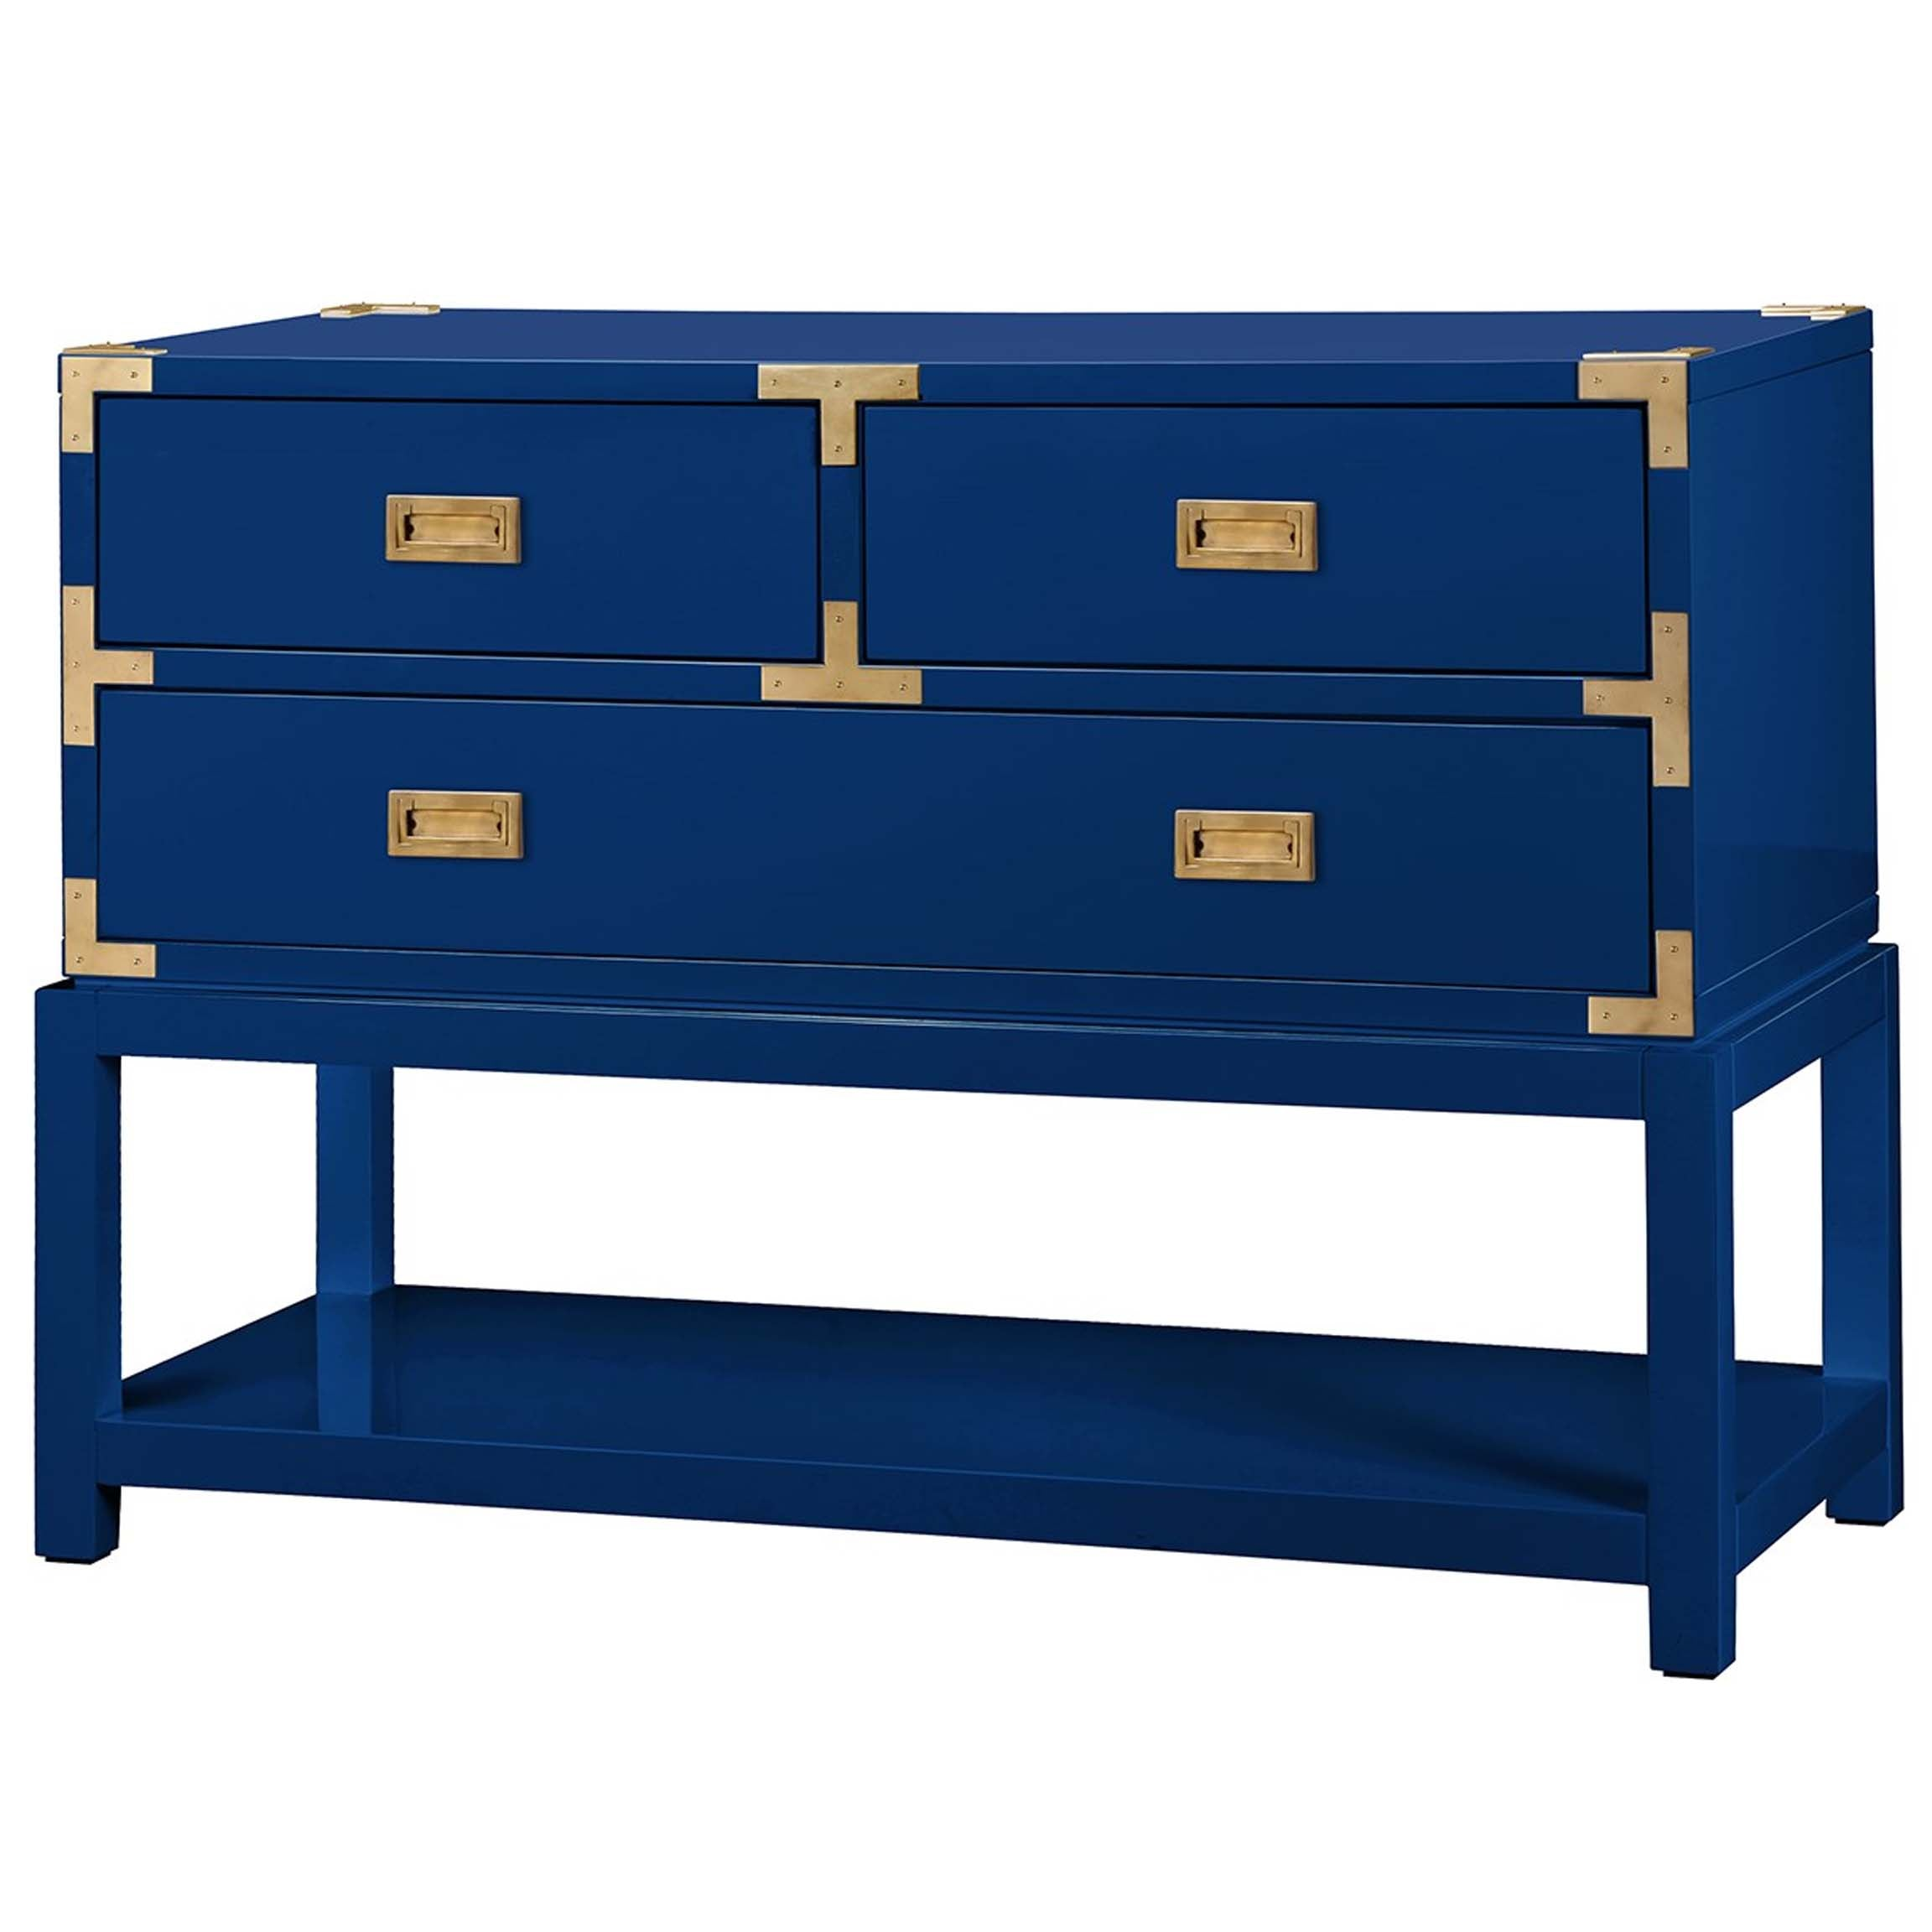 Tansu Console Table in Navy Blue